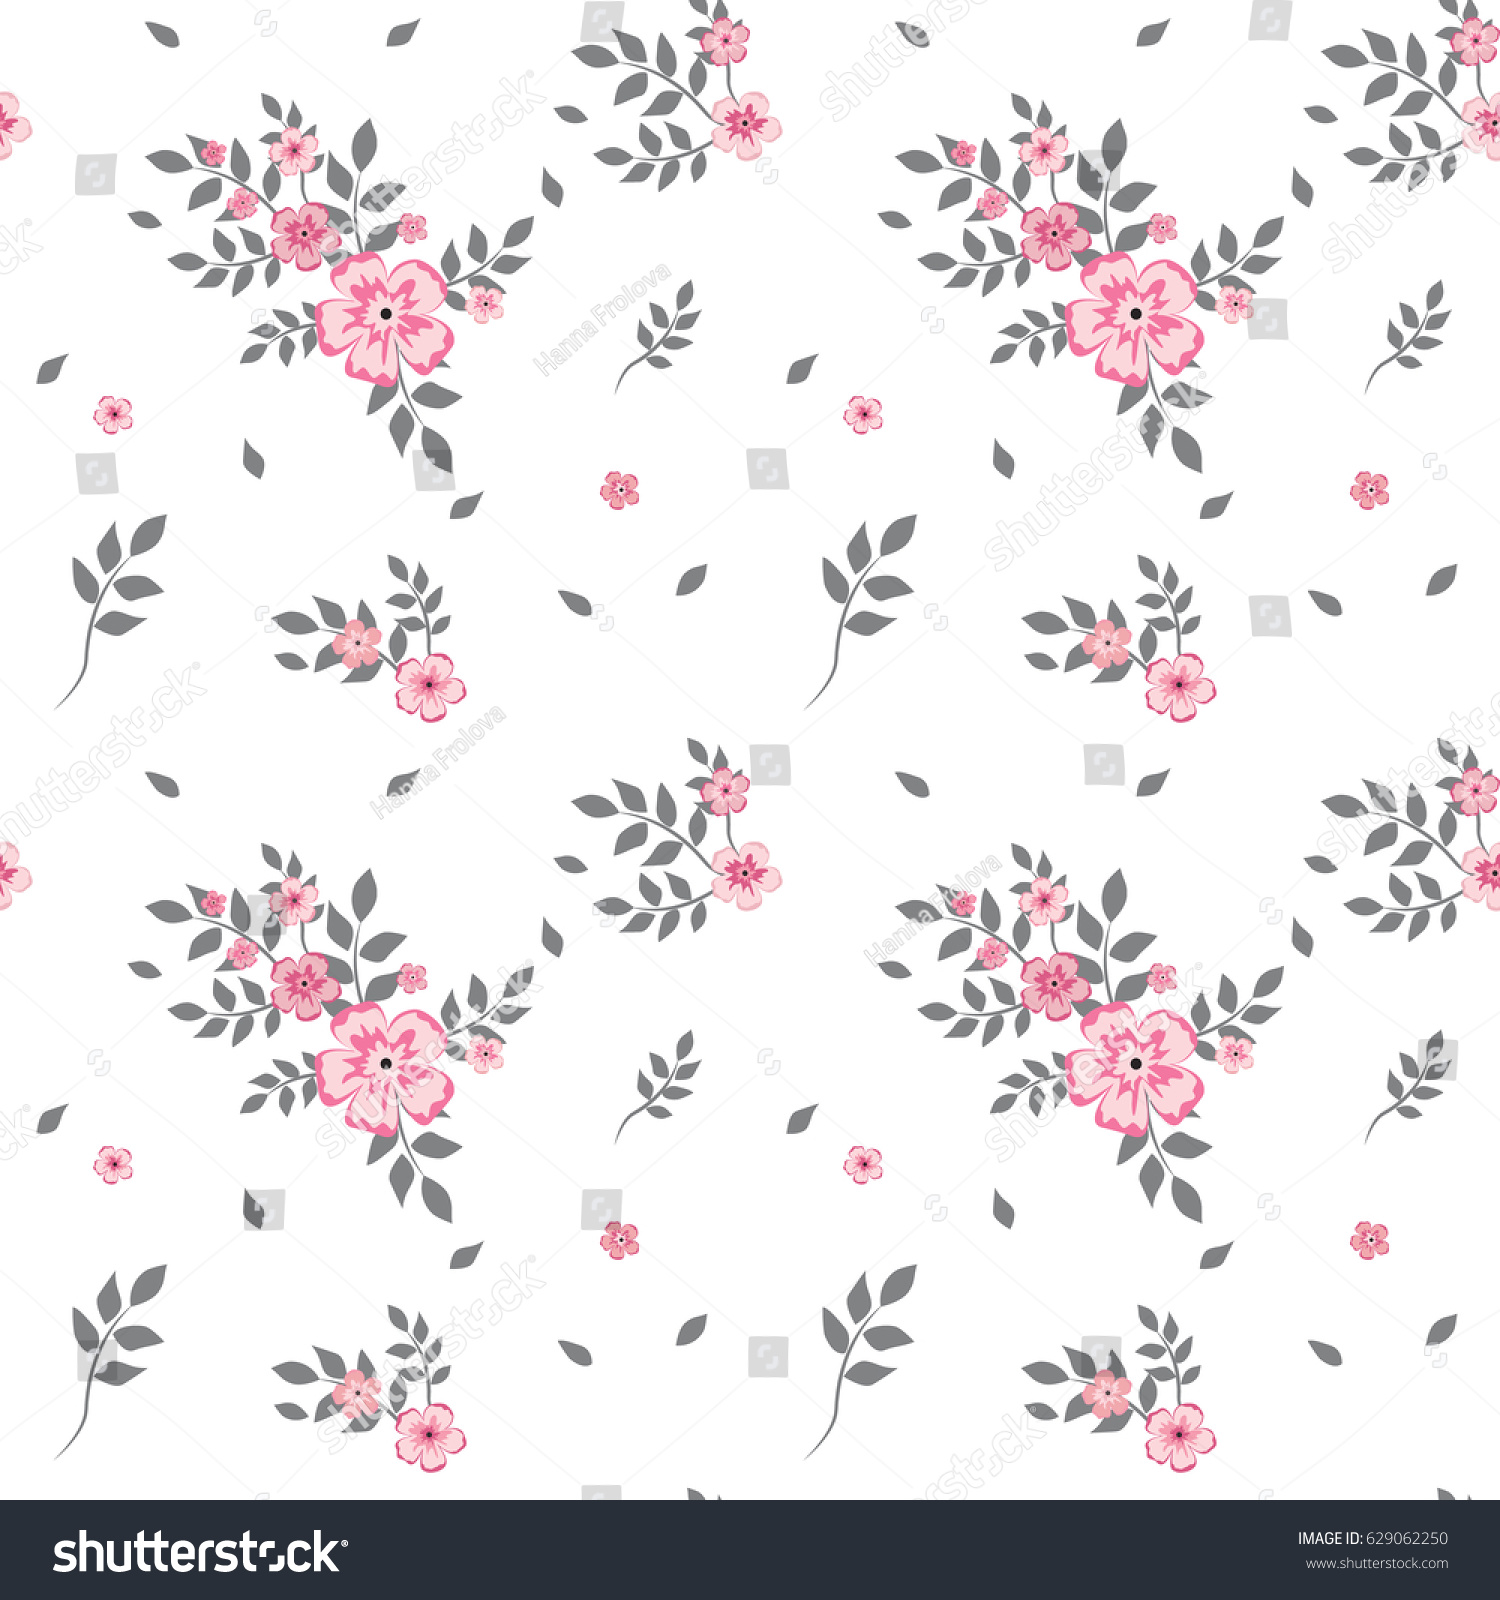 Drawing Small Pink Flower Gray Leaves Stock Vector Royalty Free